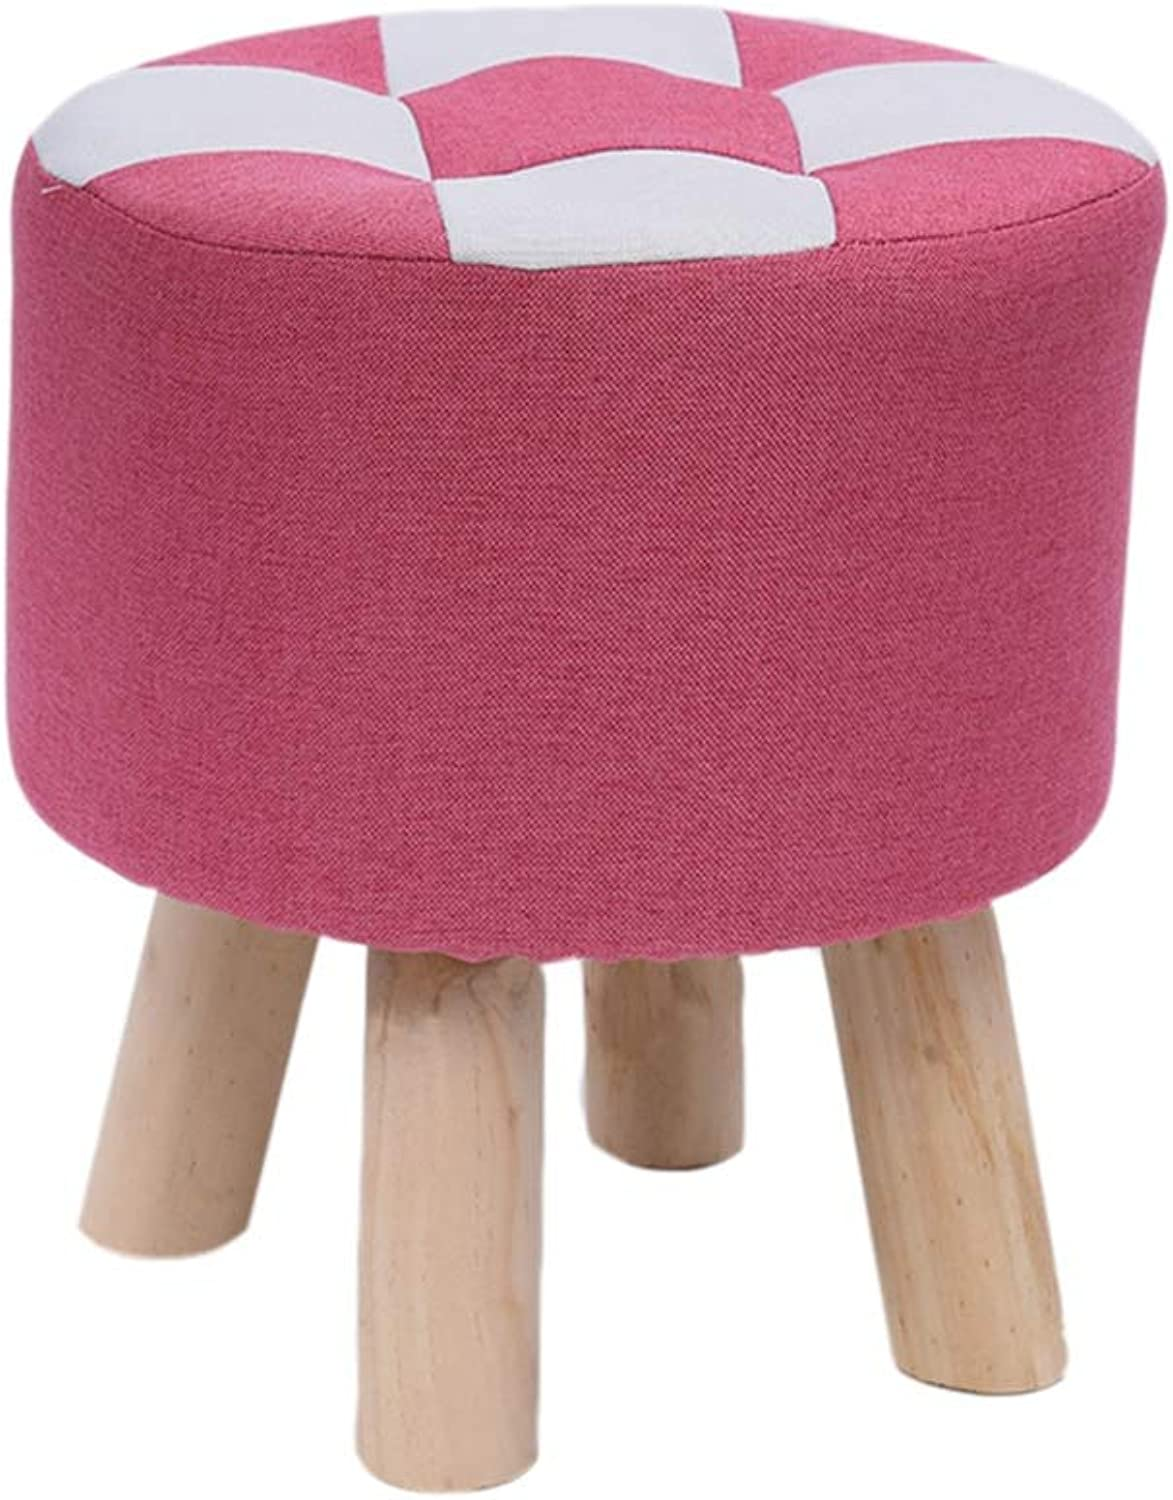 GWDJ Footrest, Small Bench, Living Room Leisure Sofa Stool, Solid Wood Low Stool, Cloth Foyer Changing His shoes Stool, 28 35 cm Height, 9 colors Reinforced Footrest (color   Pink, Size   31  35cm)